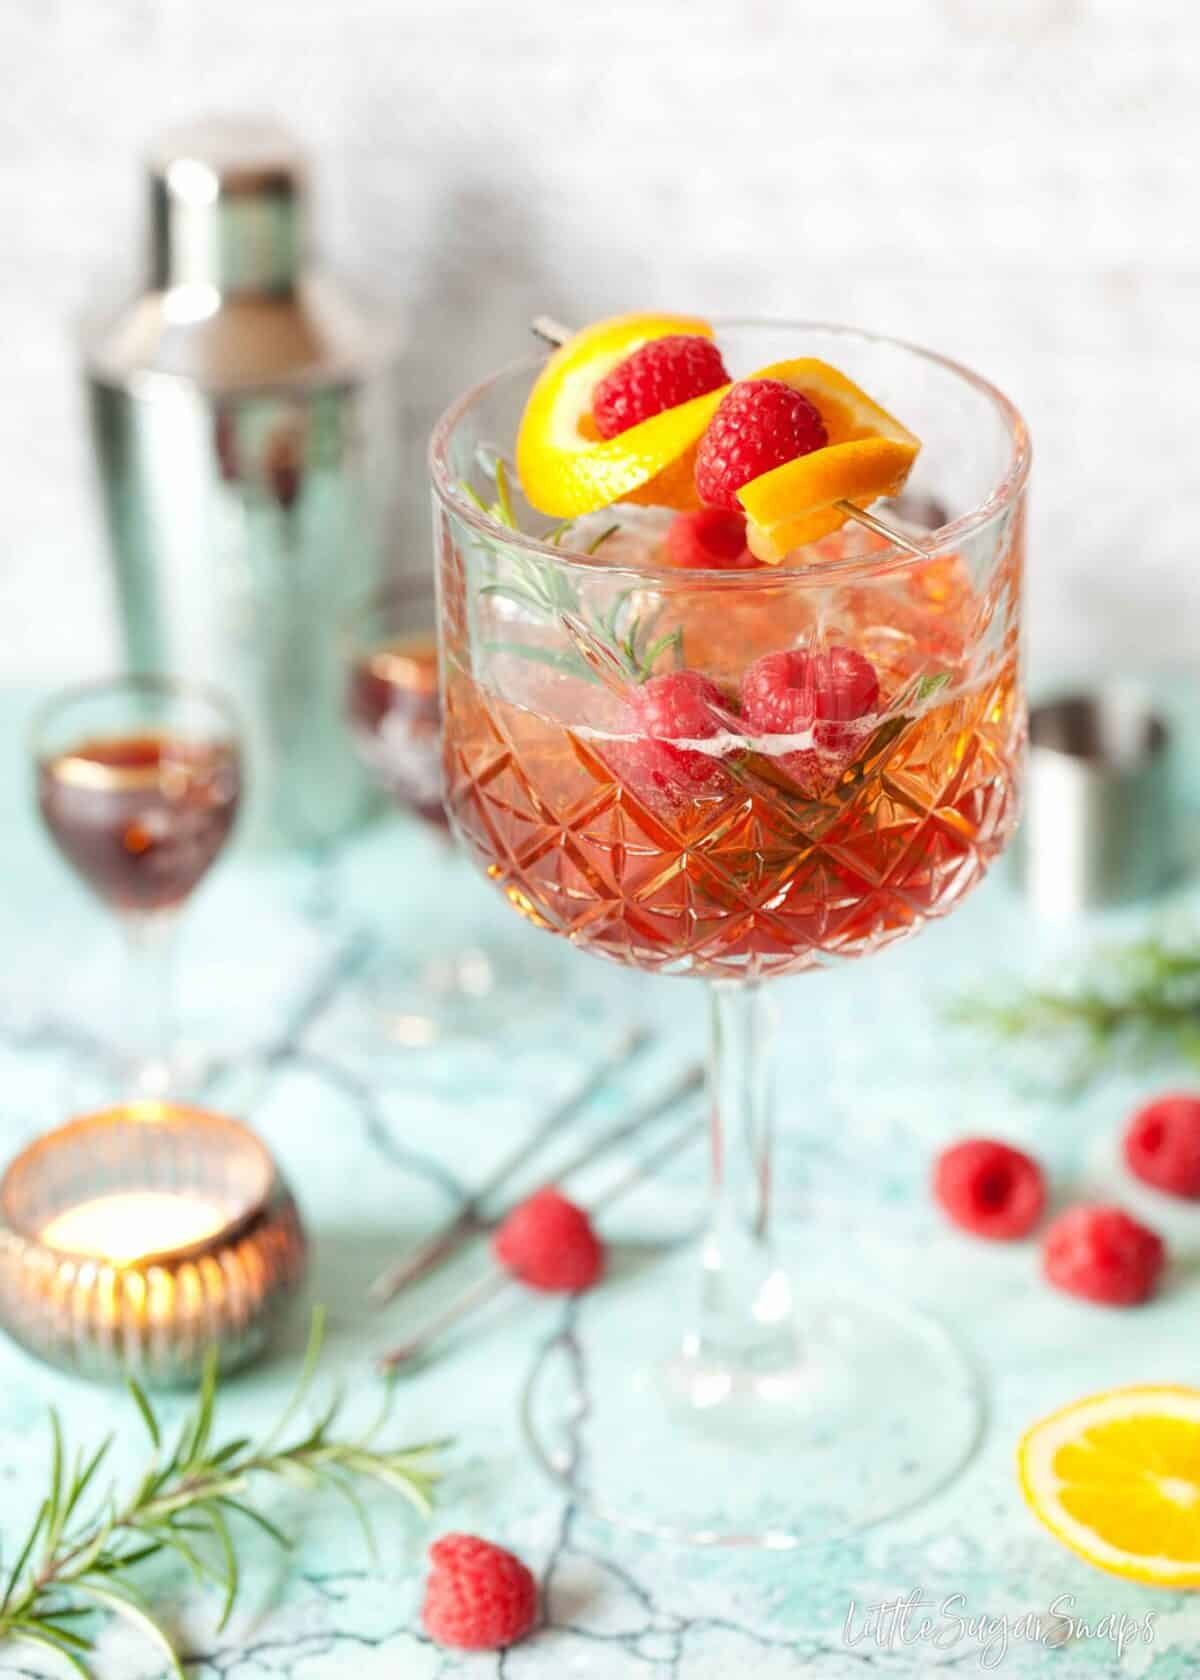 Winter Aperol Spritz cocktail with orange, raspberry and rosemary garnish in an cut glass copa